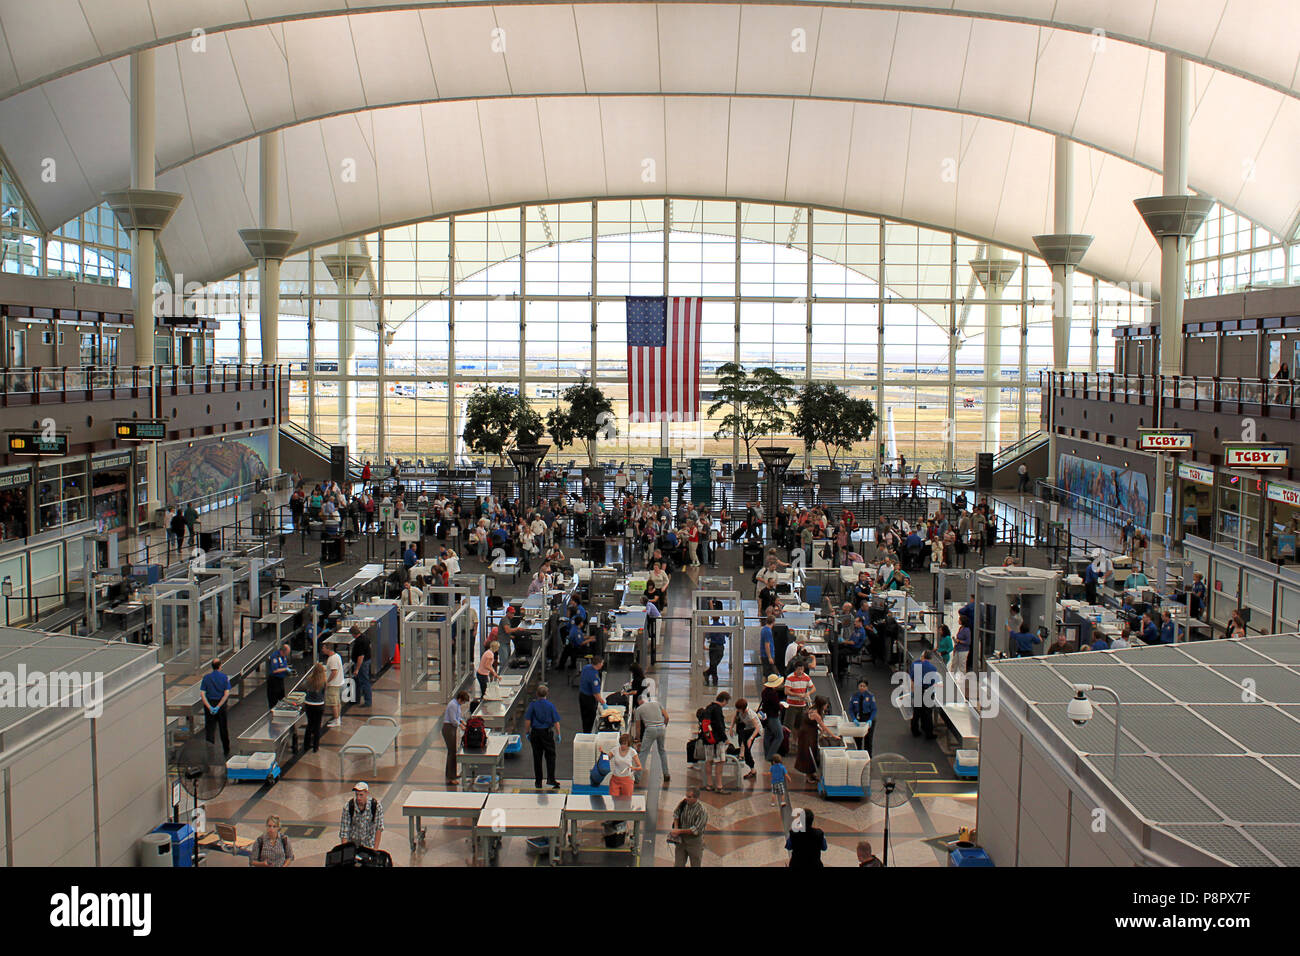 editorial concept related to airports,terminals,security at airport,holiday travel,busy travelling season - Stock Image